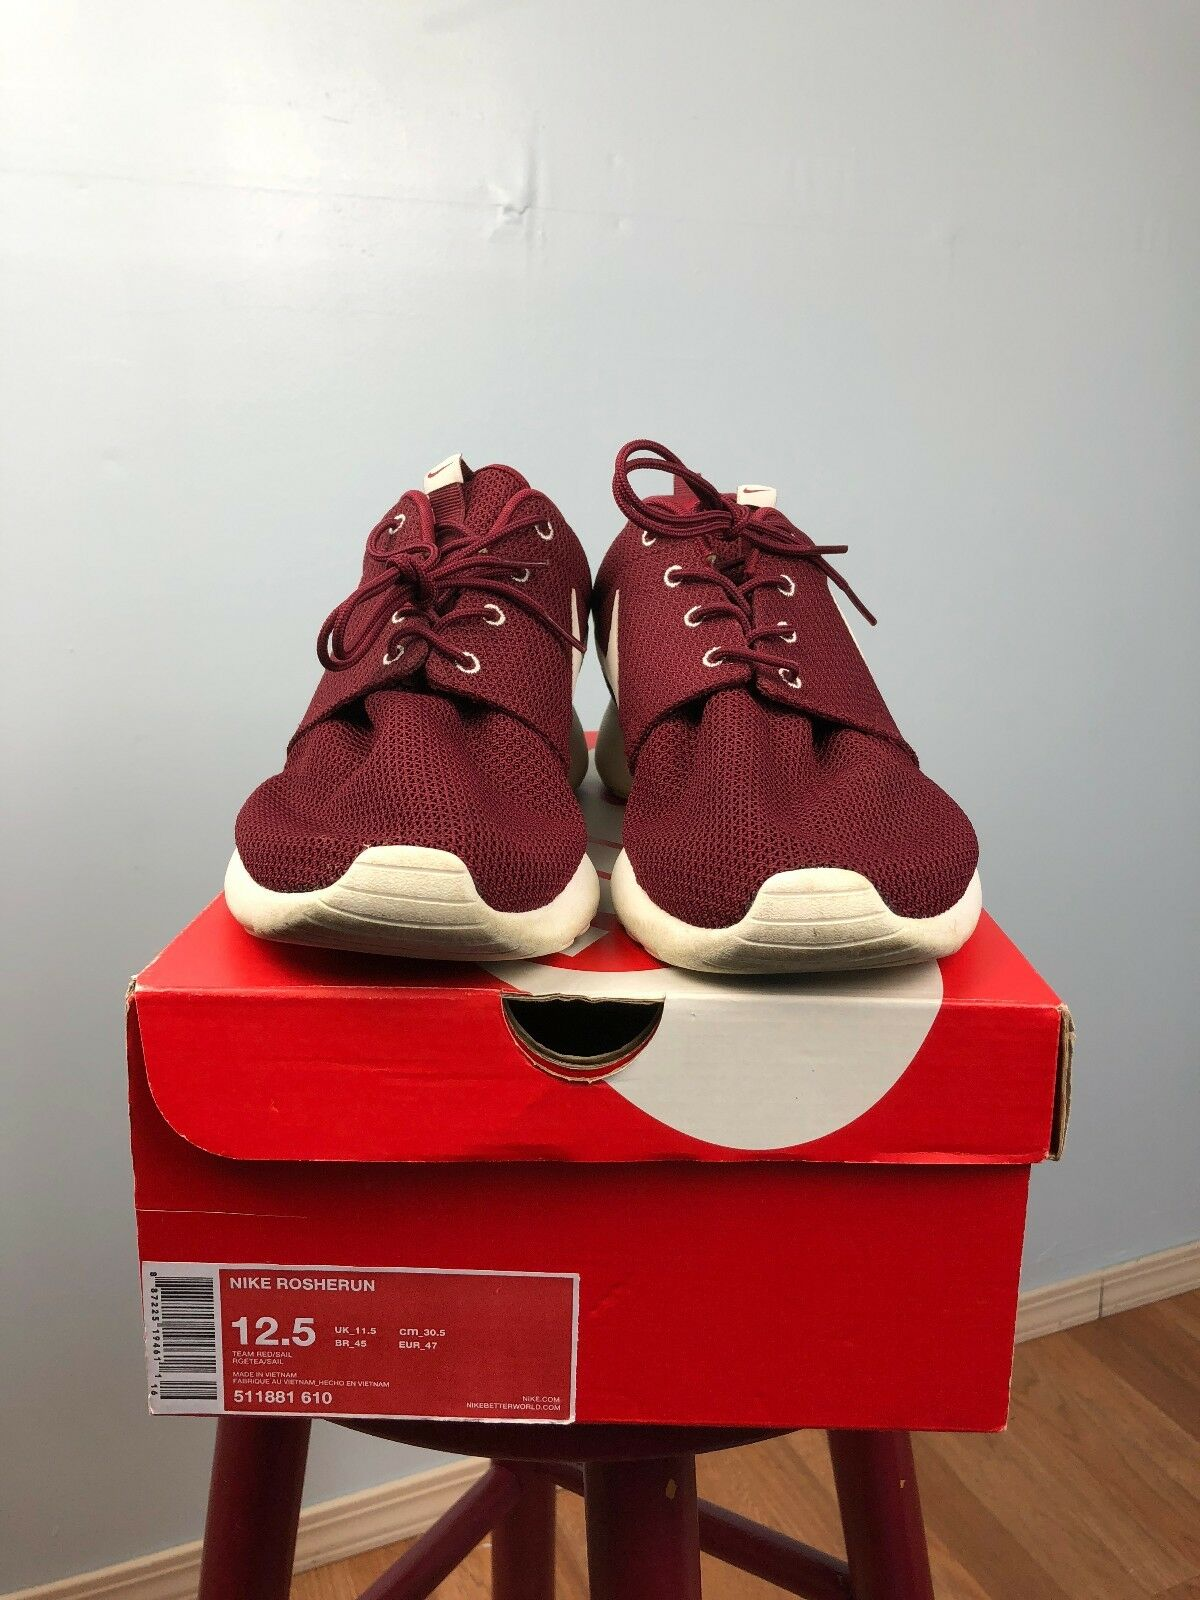 hot sale online 9c4cf 4f56a ... Nike Rosherun Team Red Sail Sail Sail Maroon Pre-owned MEN Size US 12.5  ...